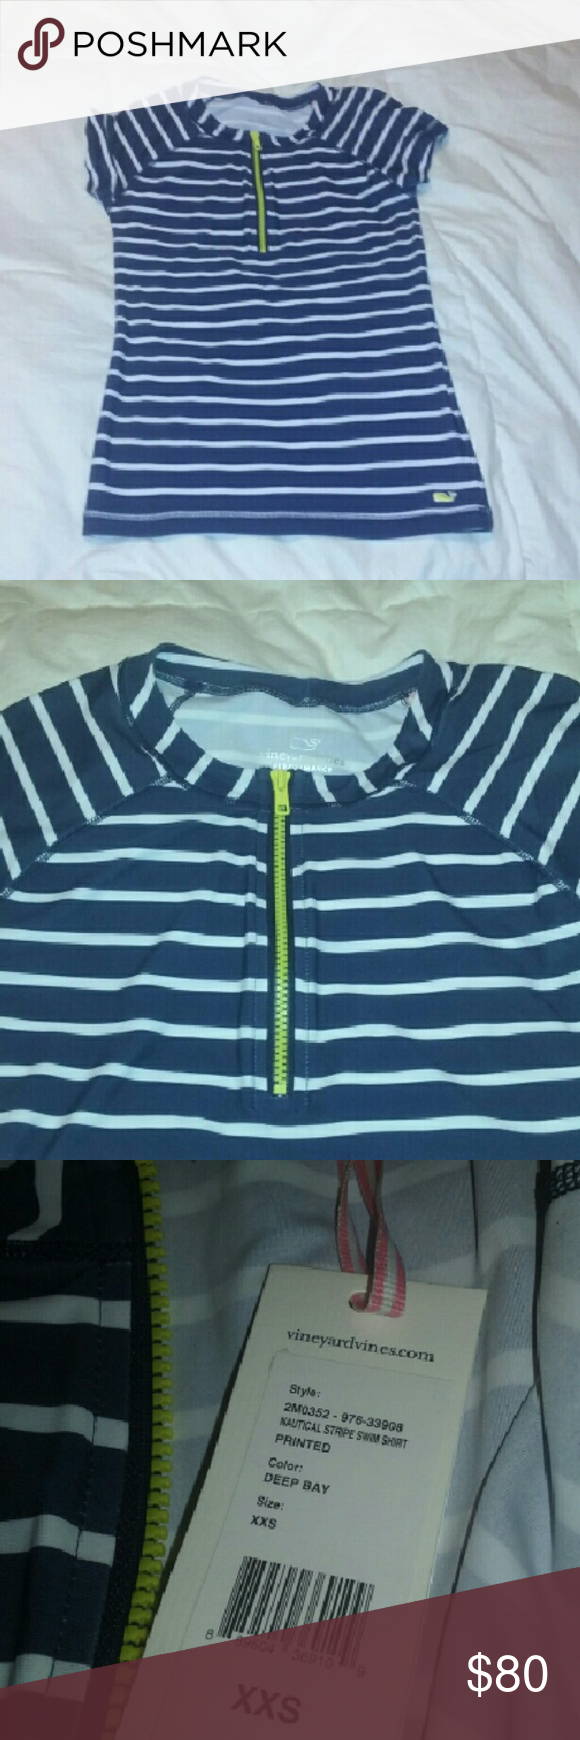 "Vineyard Vines NEW Nautical Stripe Swim Shirt XXS Brand new with tags!? Approx measurements, laid flat: chest 14"", length 23"".? Great find! Vineyard Vines Swim"